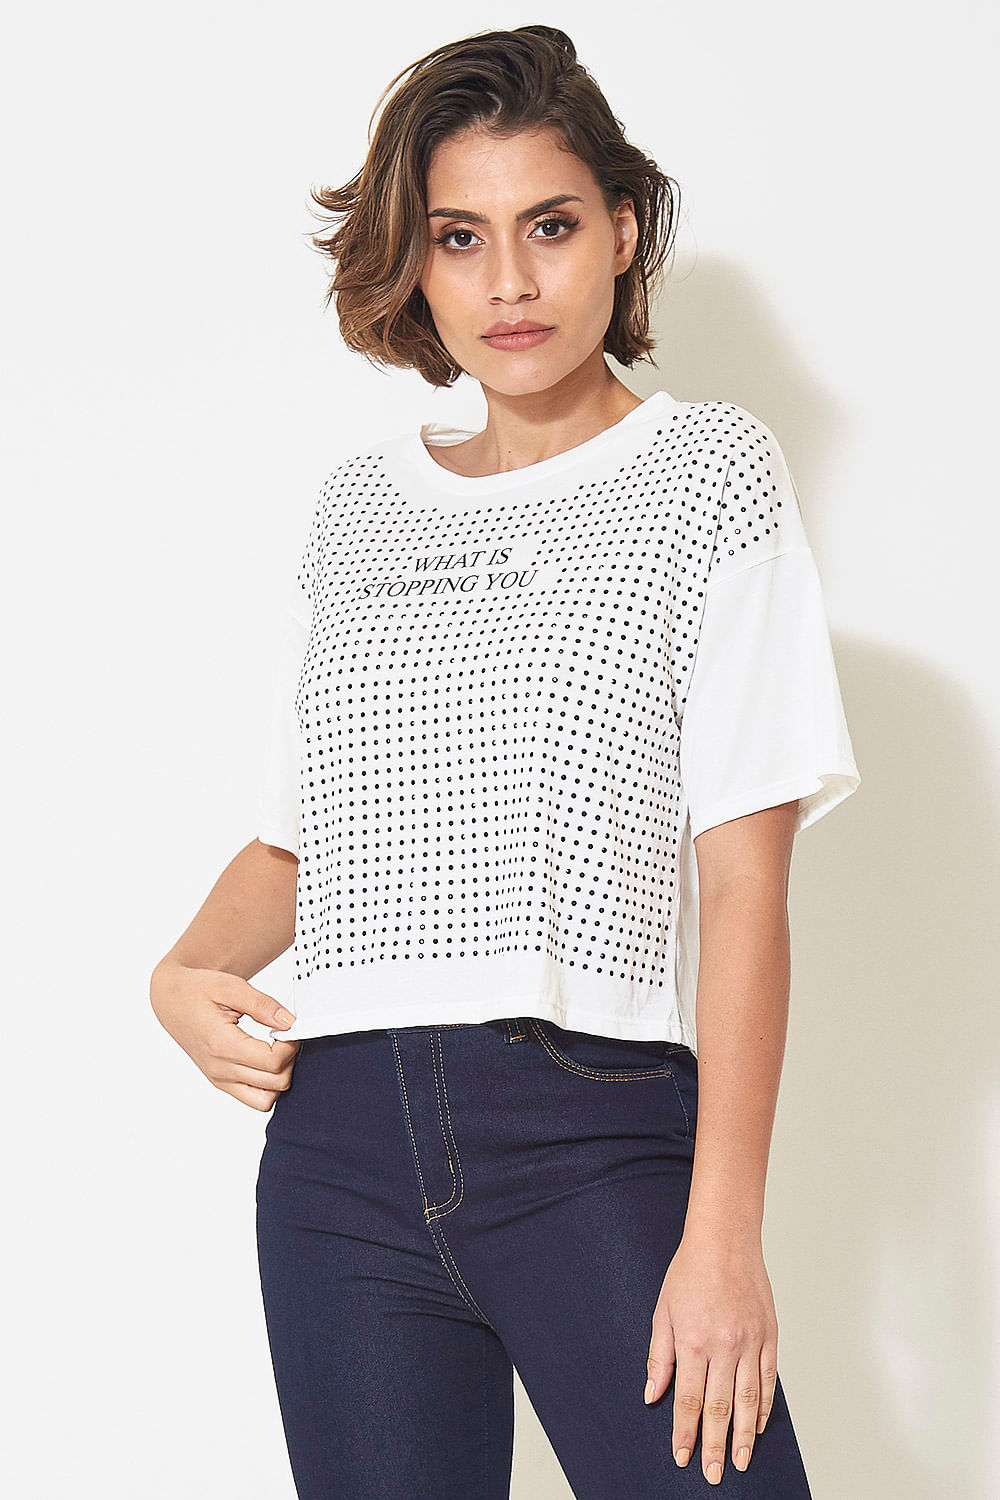 02011801_0015_1-BLUSA-WHAT-IS-STOPPING-YOU